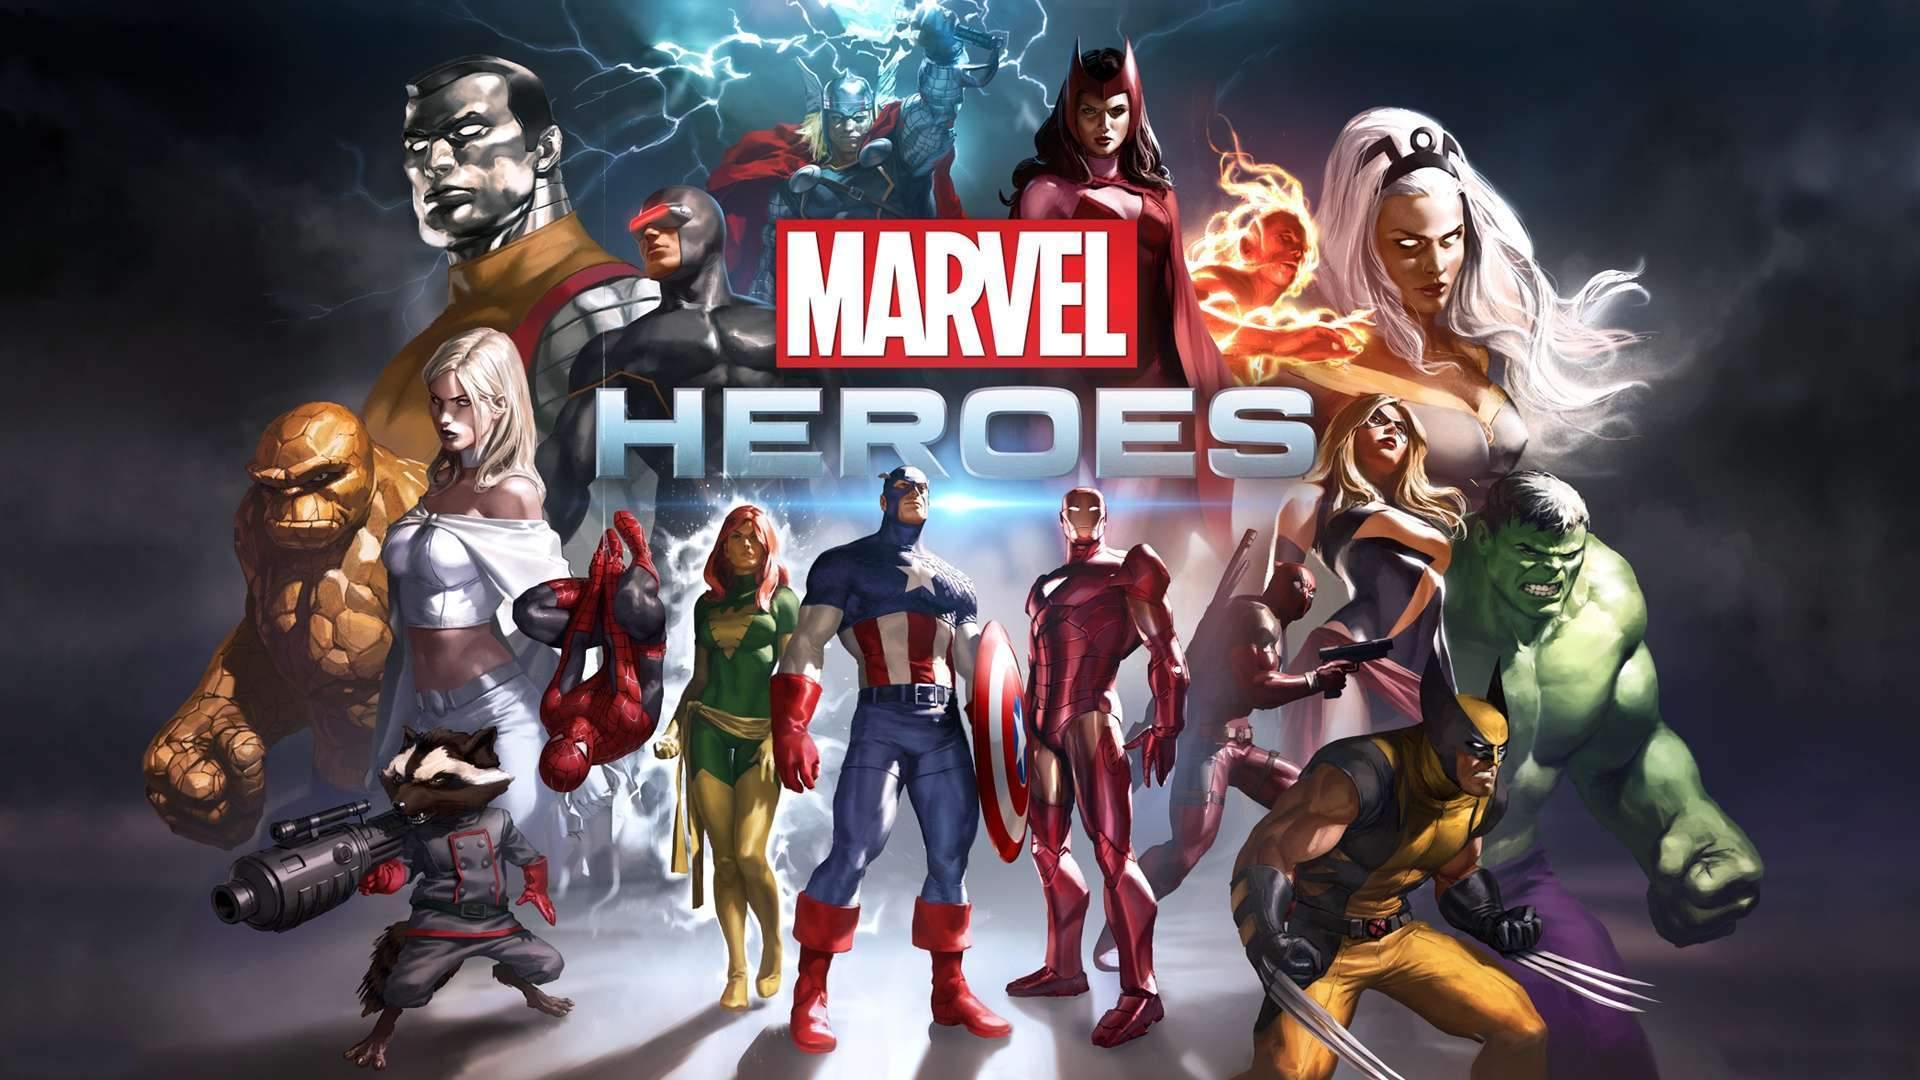 Wallpaper Marvel Heroes Game HD Wallpaper 1080p Upload at March 16 1920x1080